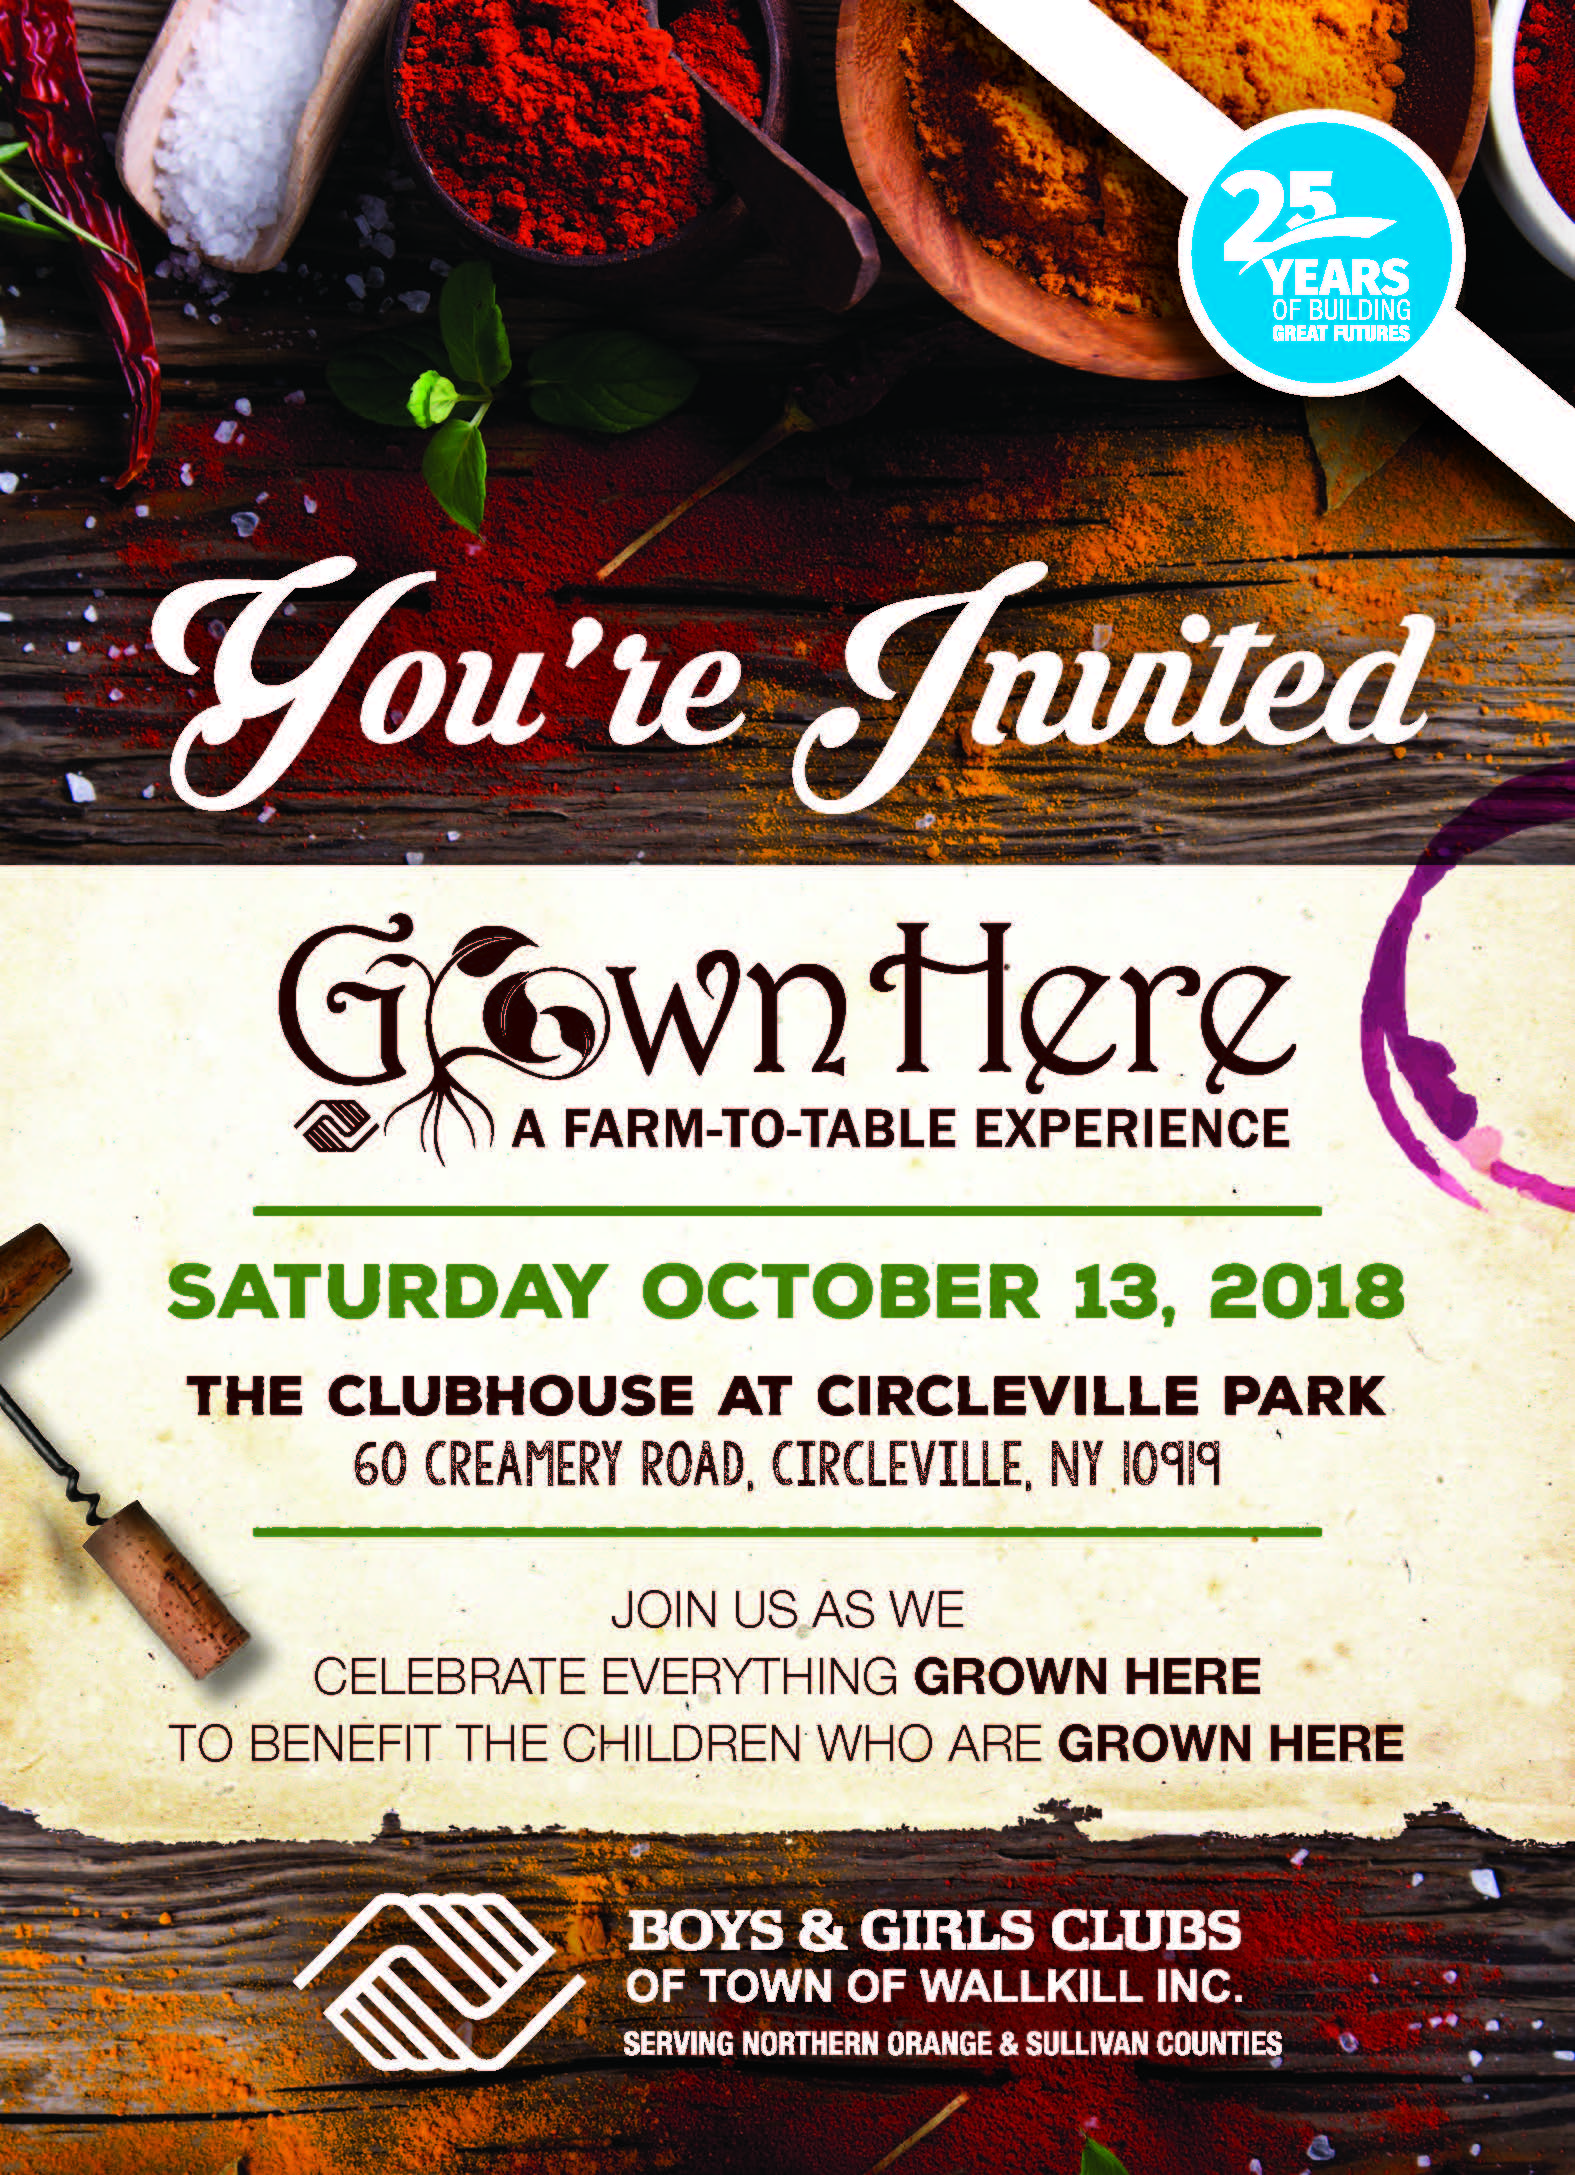 Grown Here Invite 1 of 2